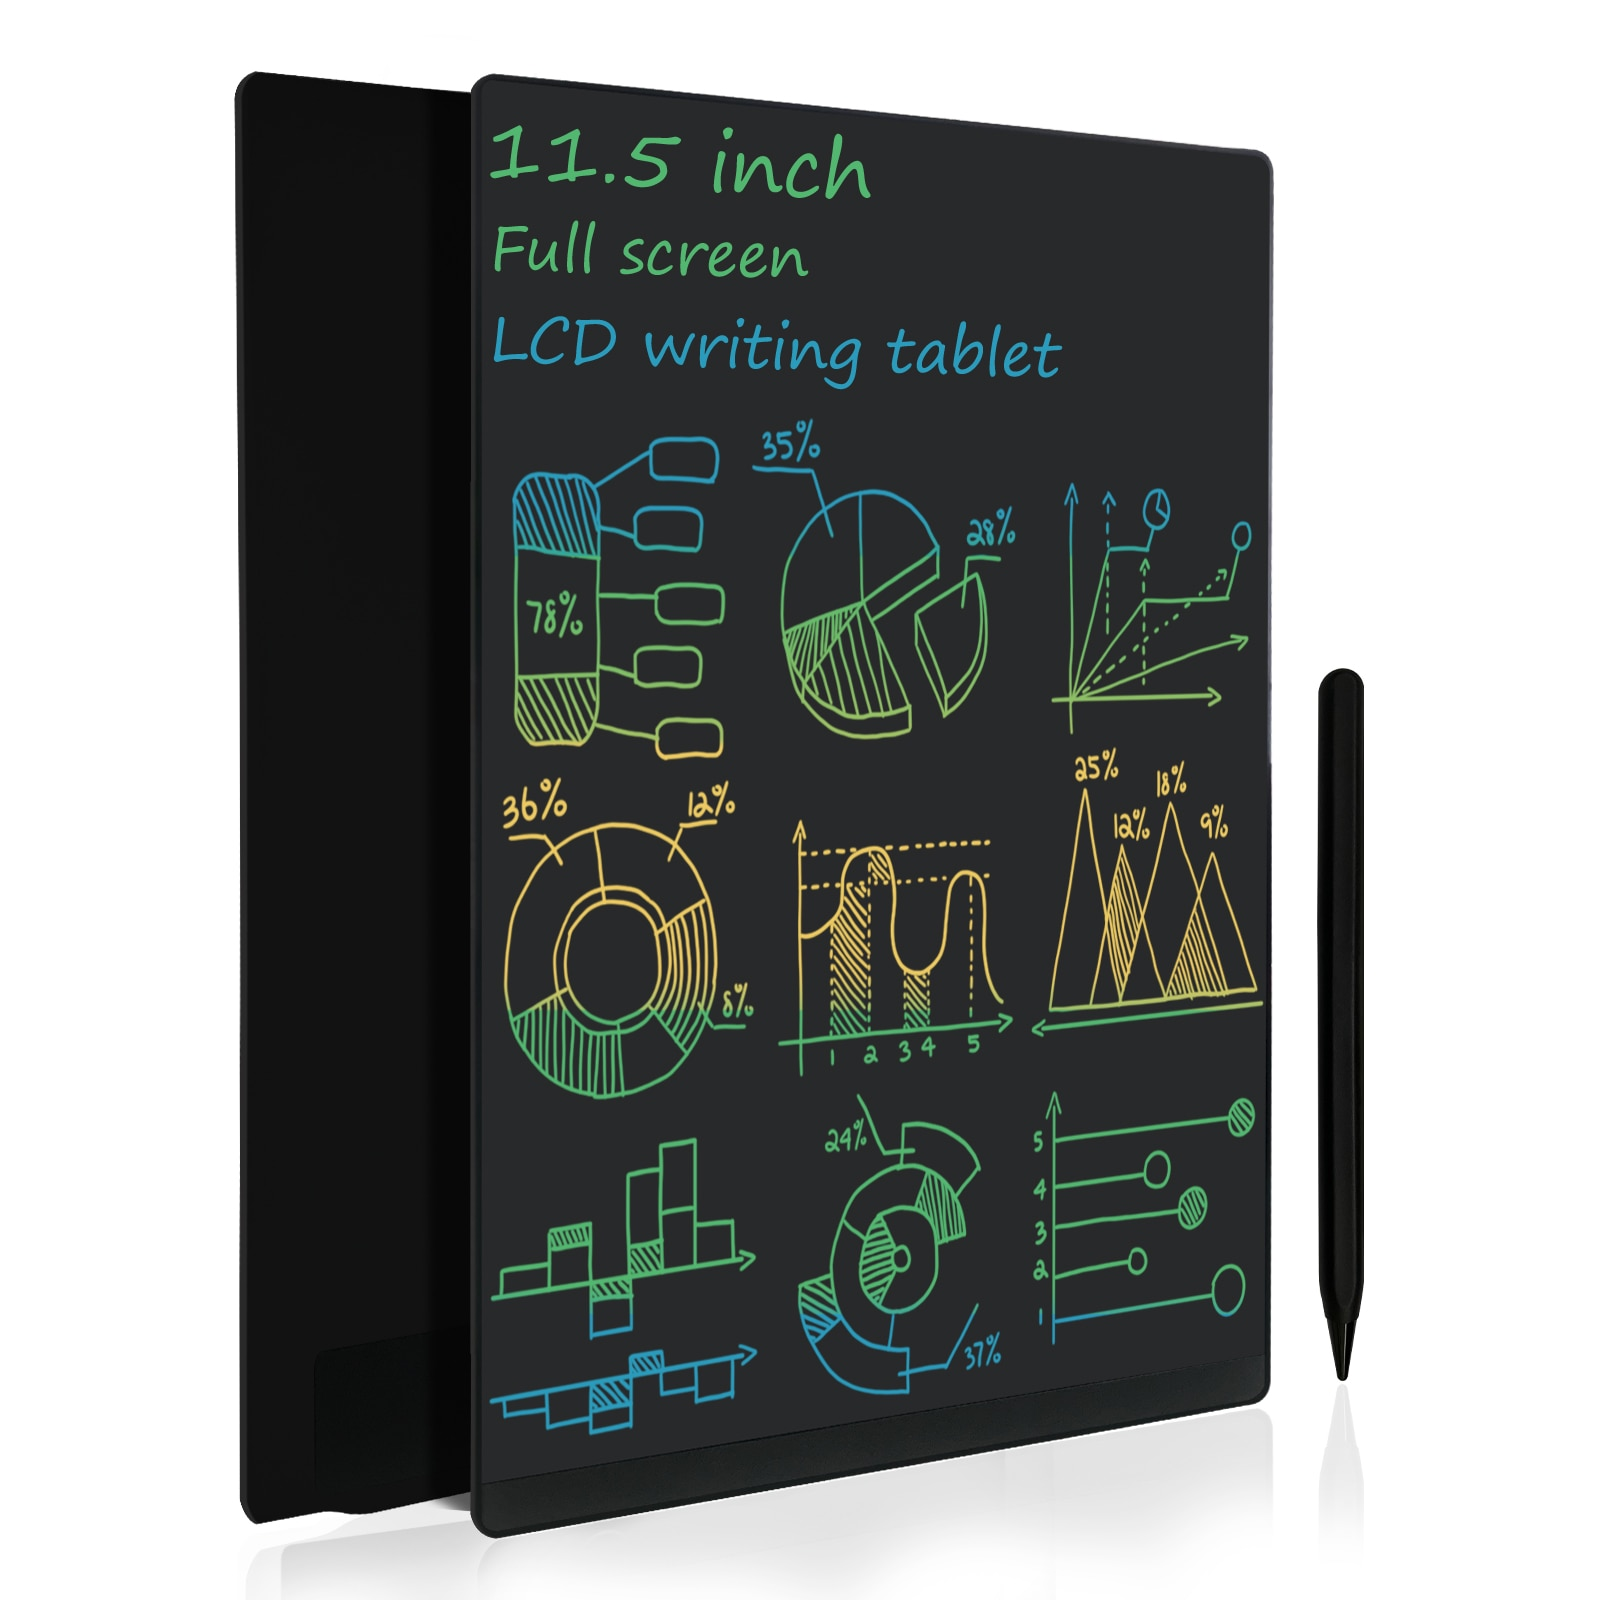 11.5 Inch Ultrathin Full Screen LCD Writing Tablet Built-in Magnets Innovative Graphic Drawing Pad Memo Boards for Work and Home